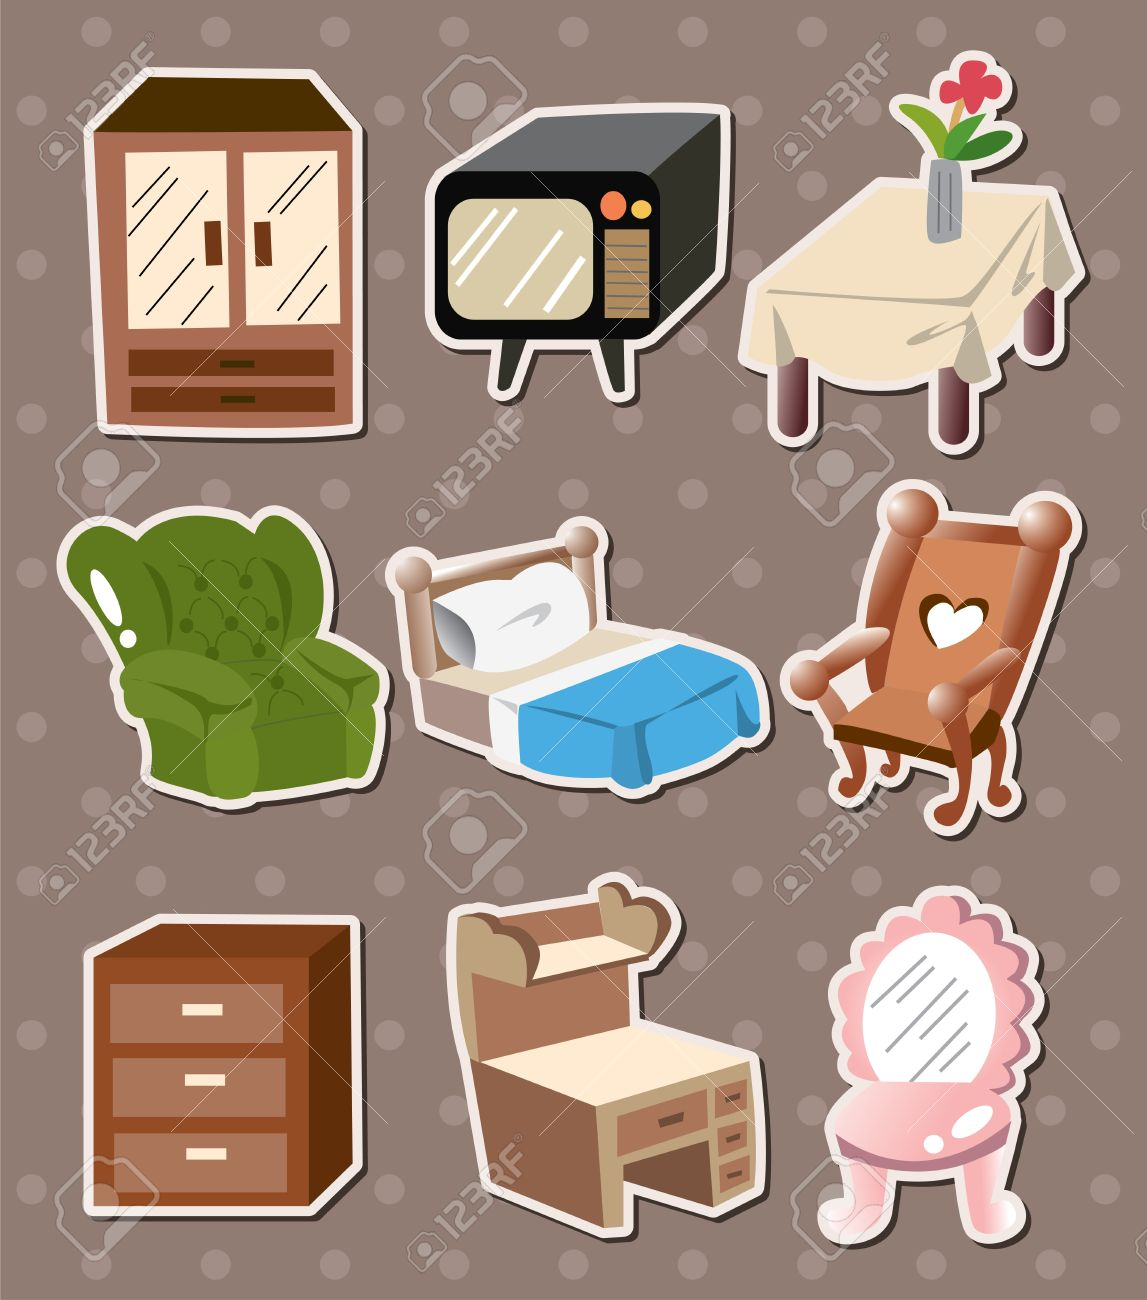 Home Furniture Stickers Royalty Free Cliparts Vectors And Stock  # Muebles De Tualet